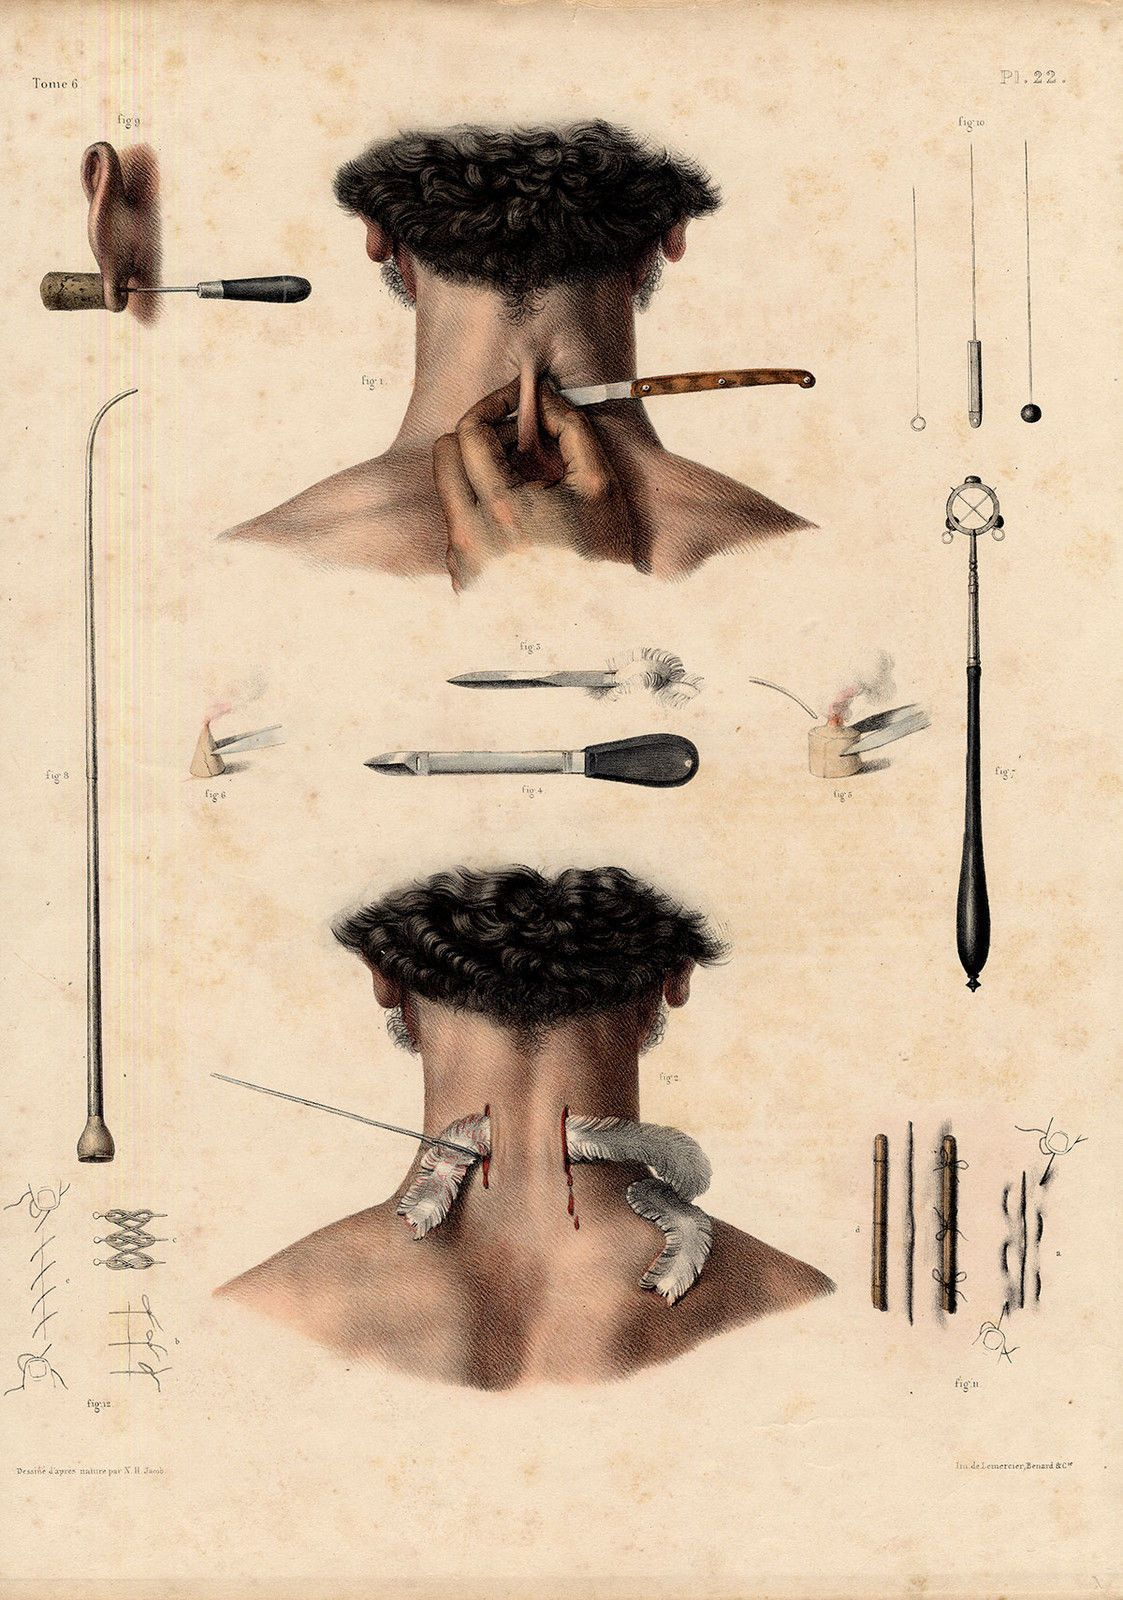 2 Antique Medical Anatomy Prints Operation Instruments PL 22 Bourgery 1831 | eBay